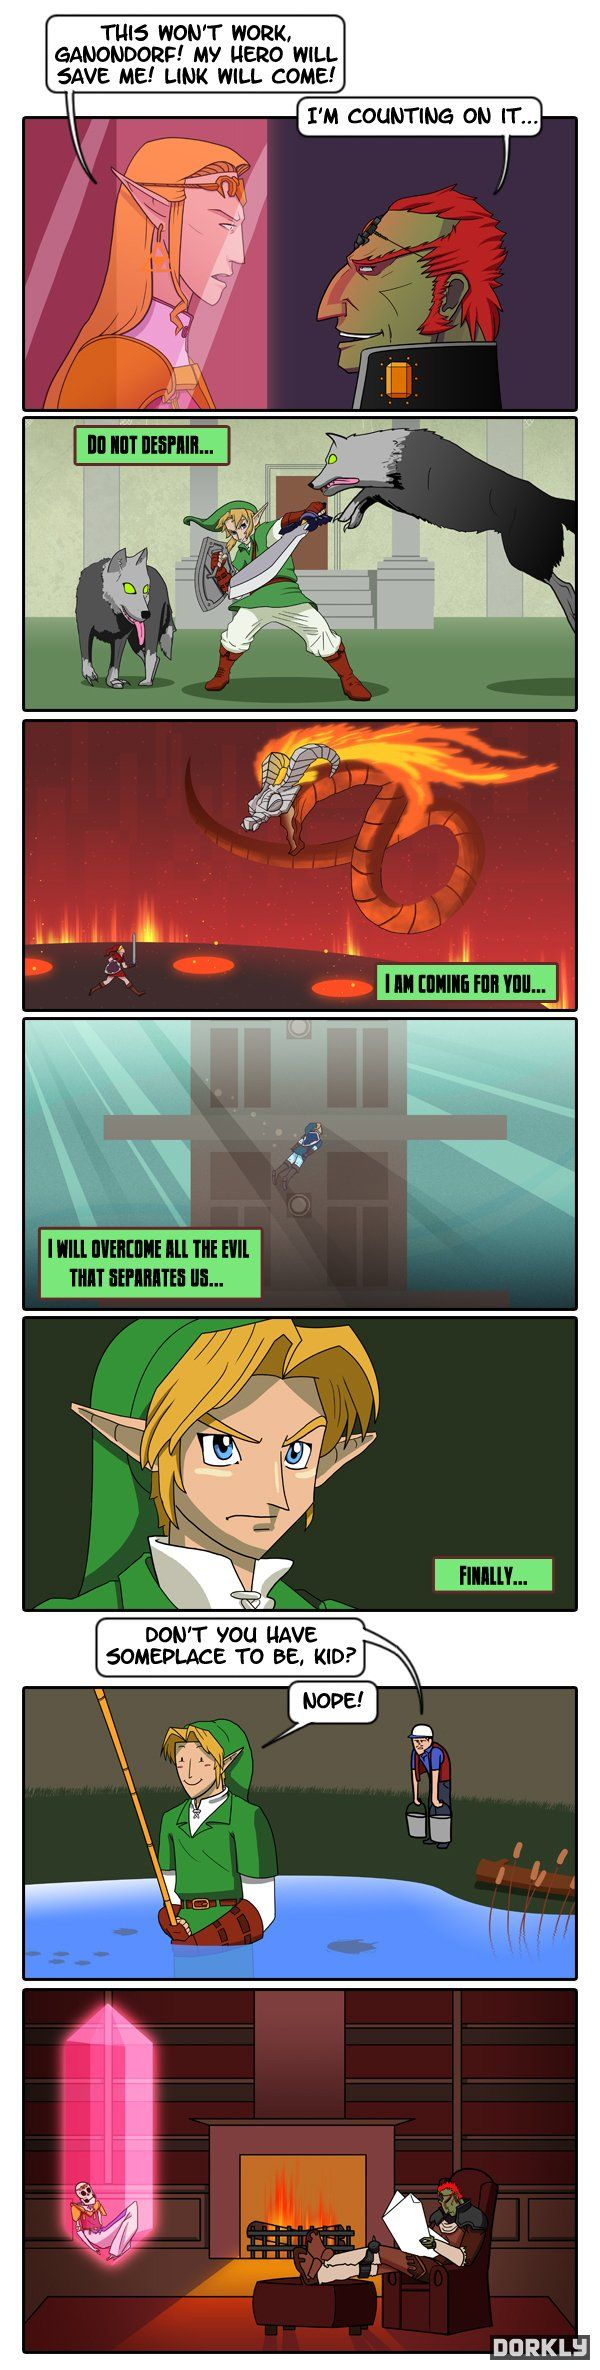 Link's On His Way.